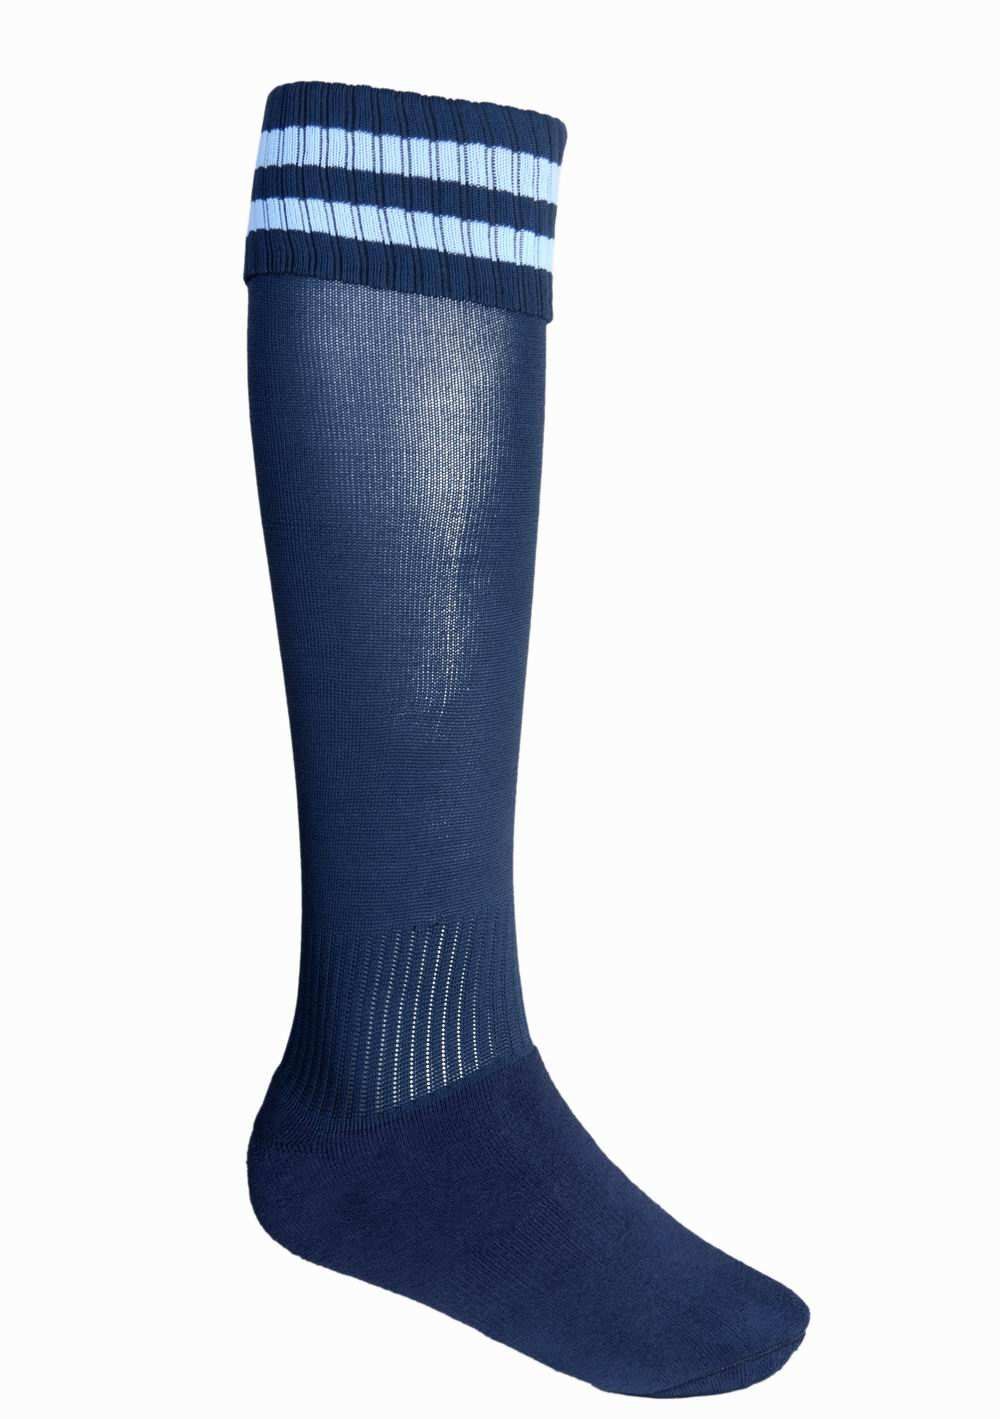 socks/small navy sky footy socks